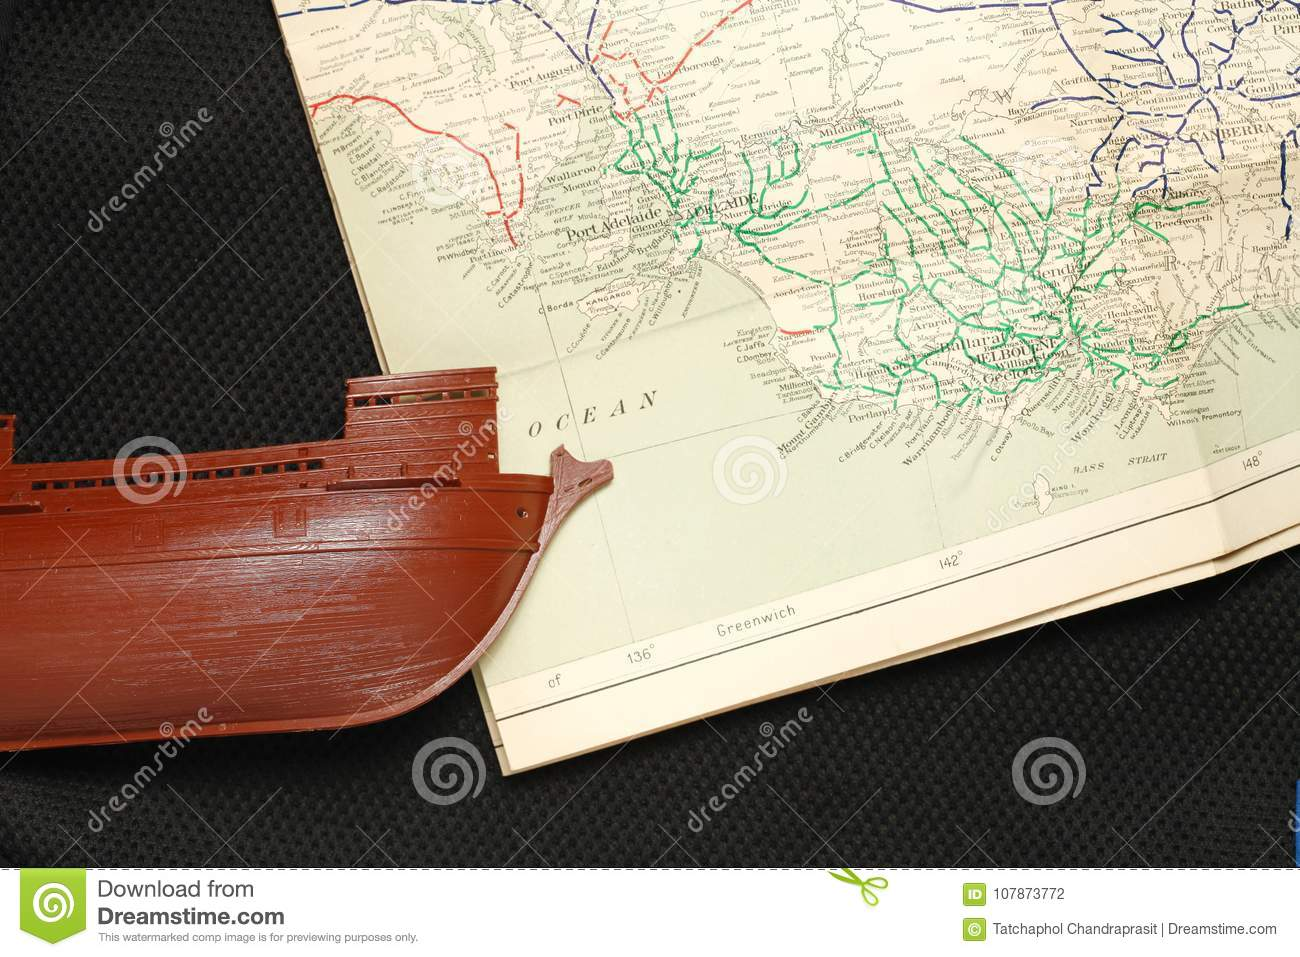 469fad85095b Ship model and map scene. stock photo. Image of gold - 107873772